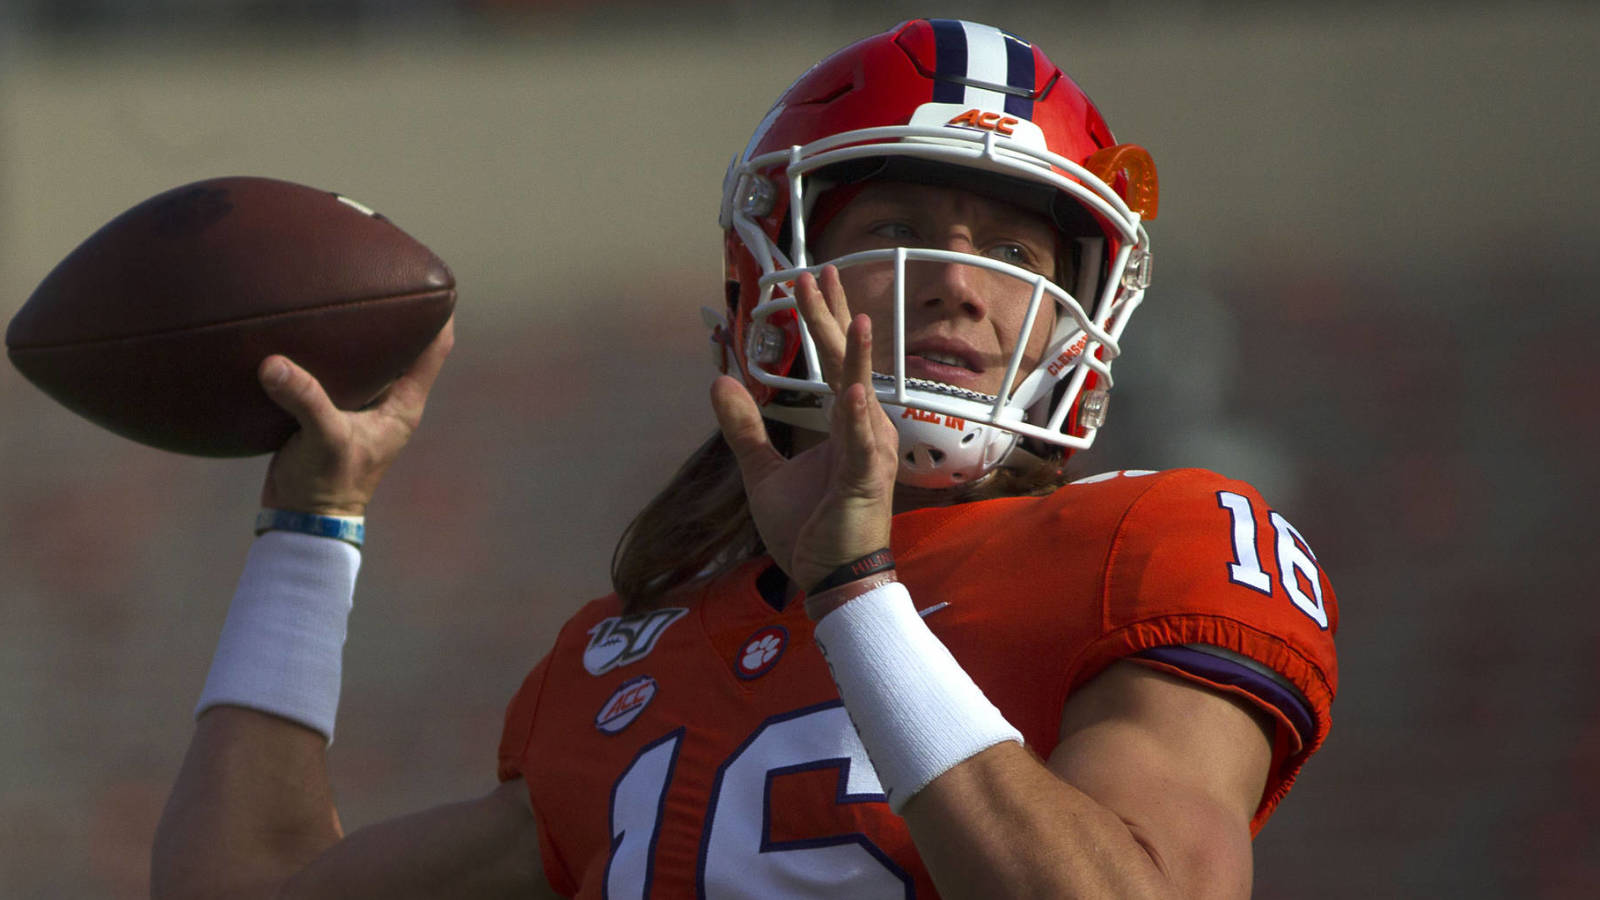 Trevor Lawrence lookalike girl Bella Martina from TikTok video attends Clemson game - Yardbarker